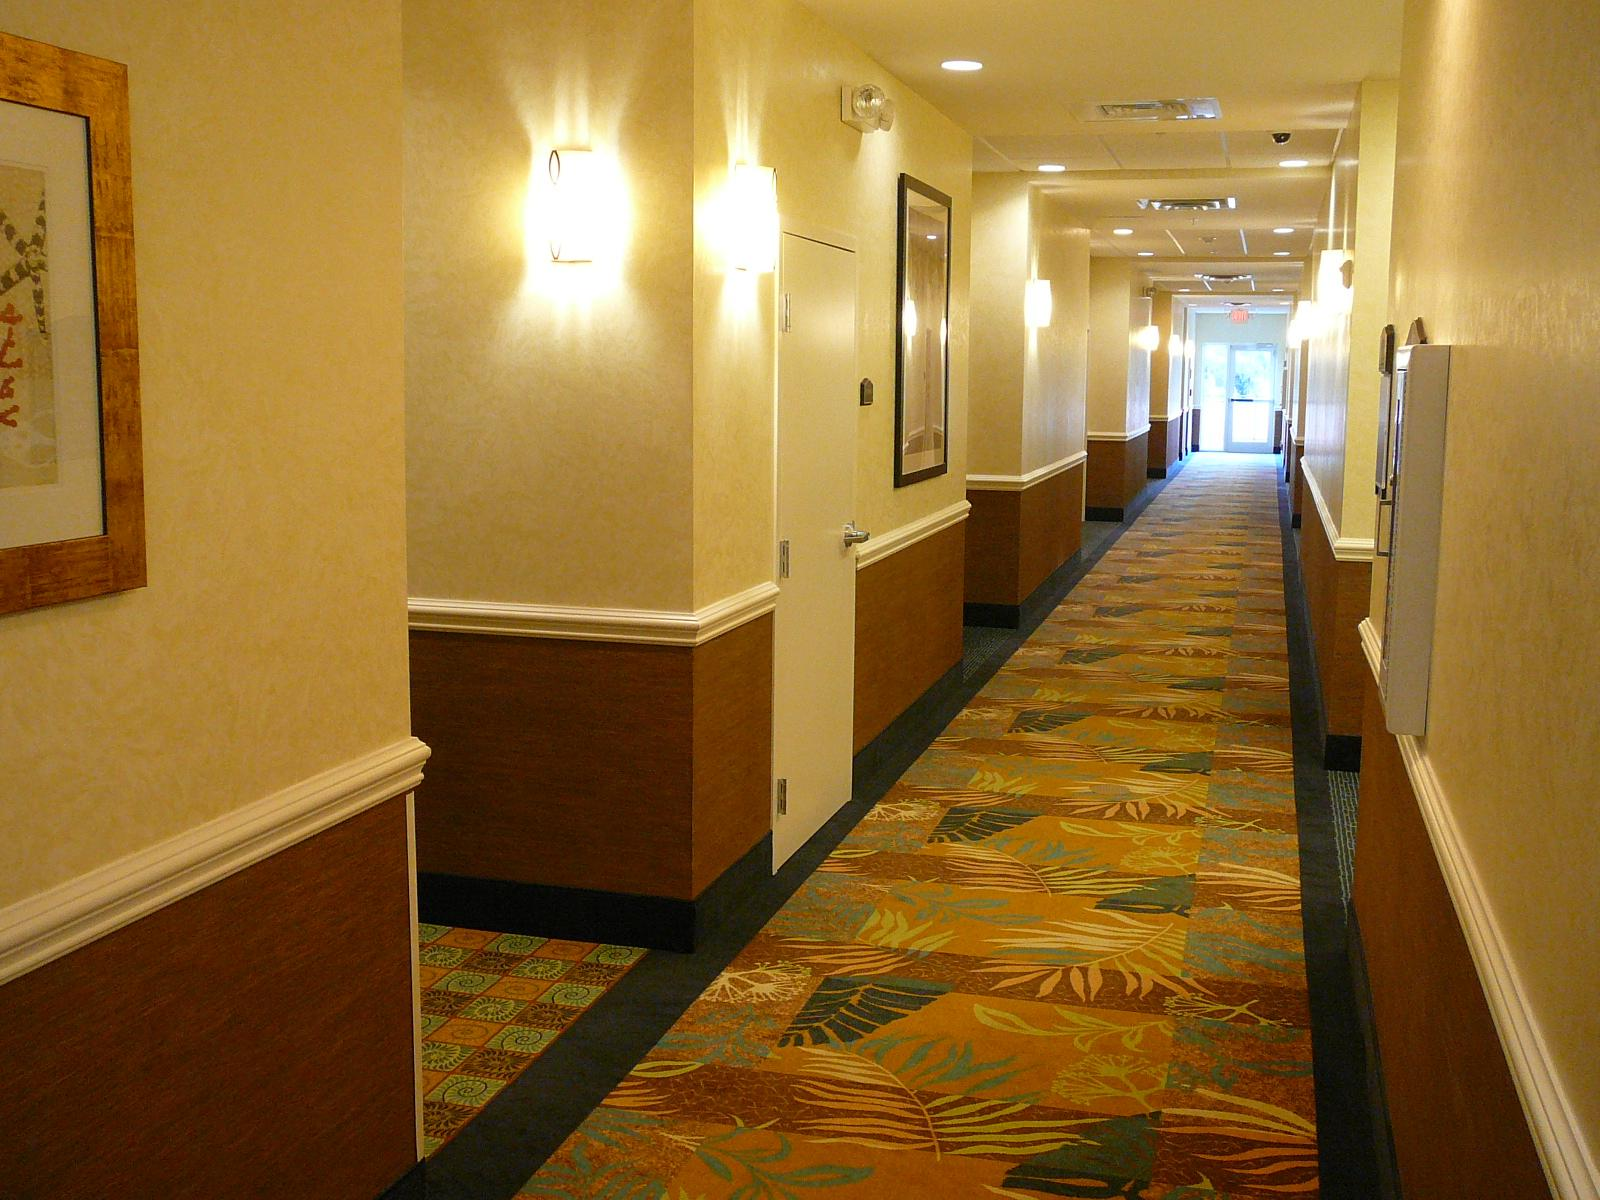 1000+ Images About Corridor Design On Pinterest